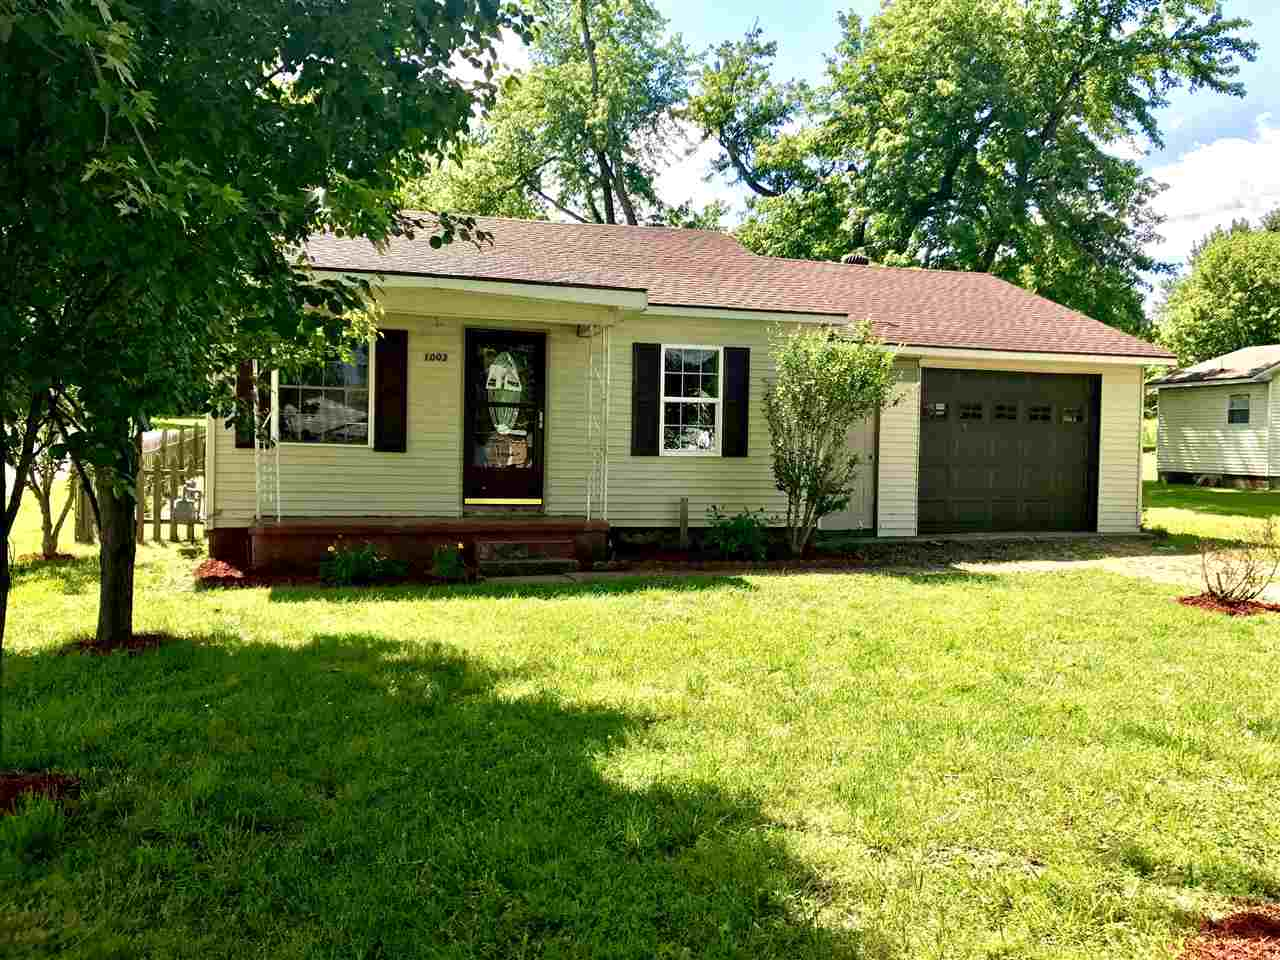 Photo of 1003 N 15th Street EXT  Mayfield  KY